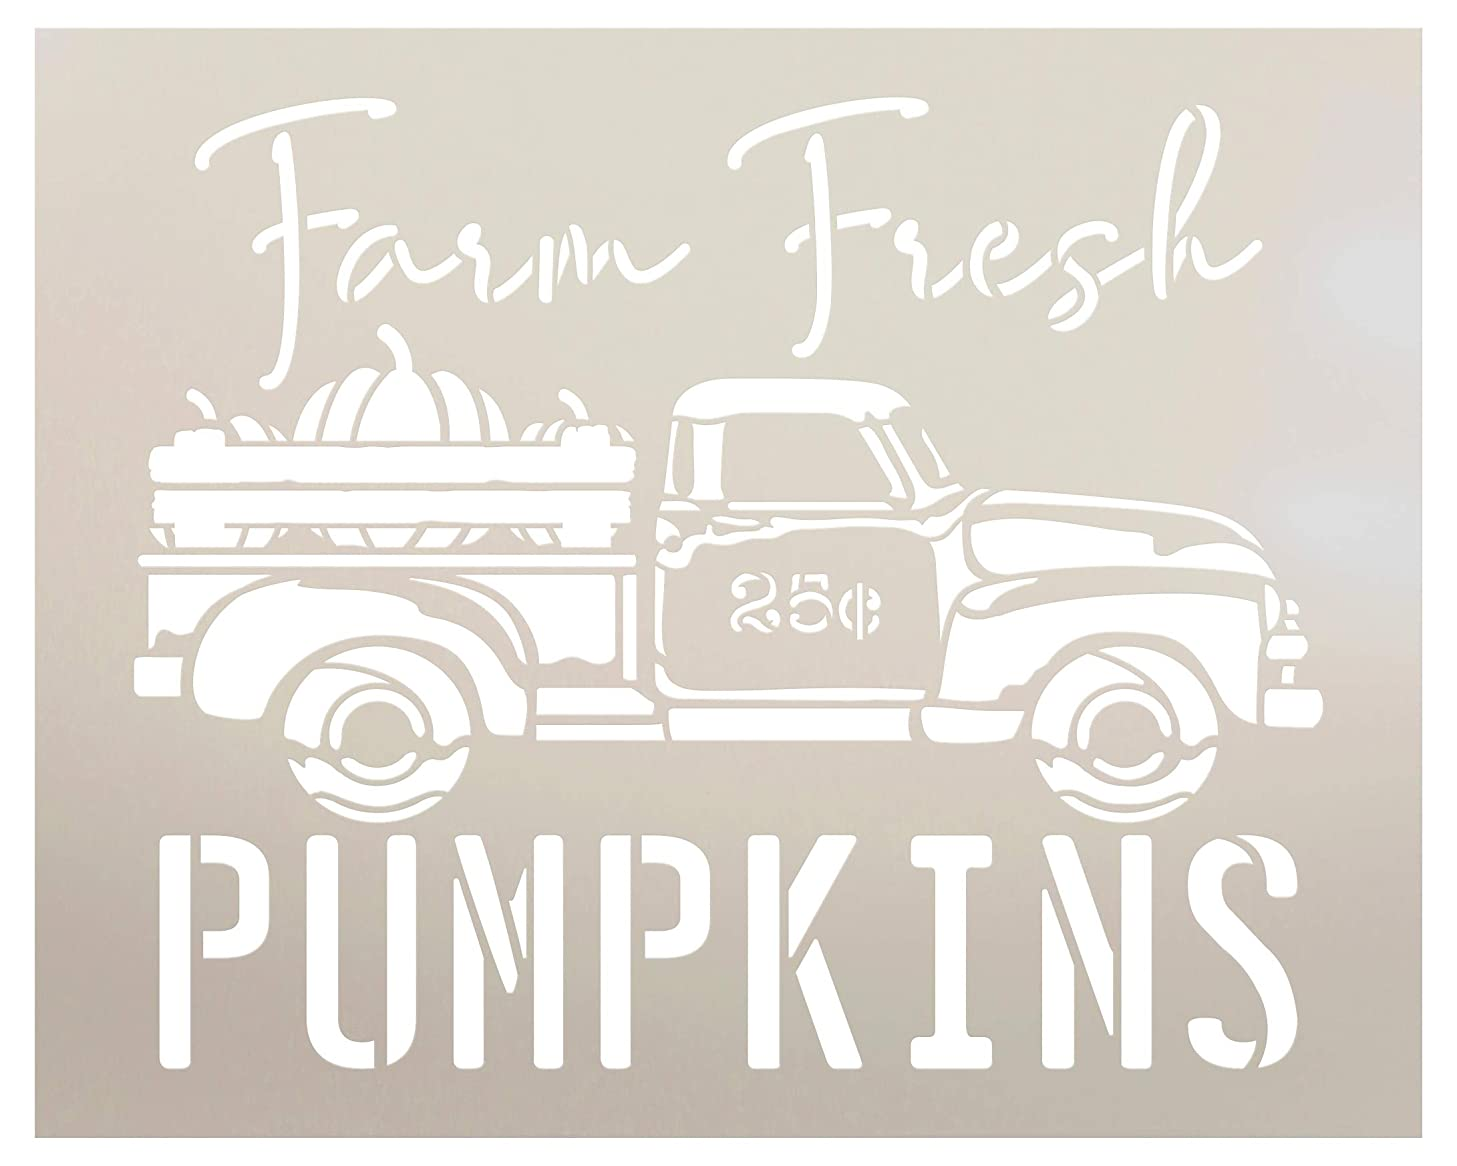 Farm Fresh Pumpkins 25 Cents with Truck Stencil by StudioR12 | Wood Signs | Word Art Reusable | Fall | Painting Chalk Mixed Media Multi-Media | Use for Journaling, DIY Home - Choose Size (8